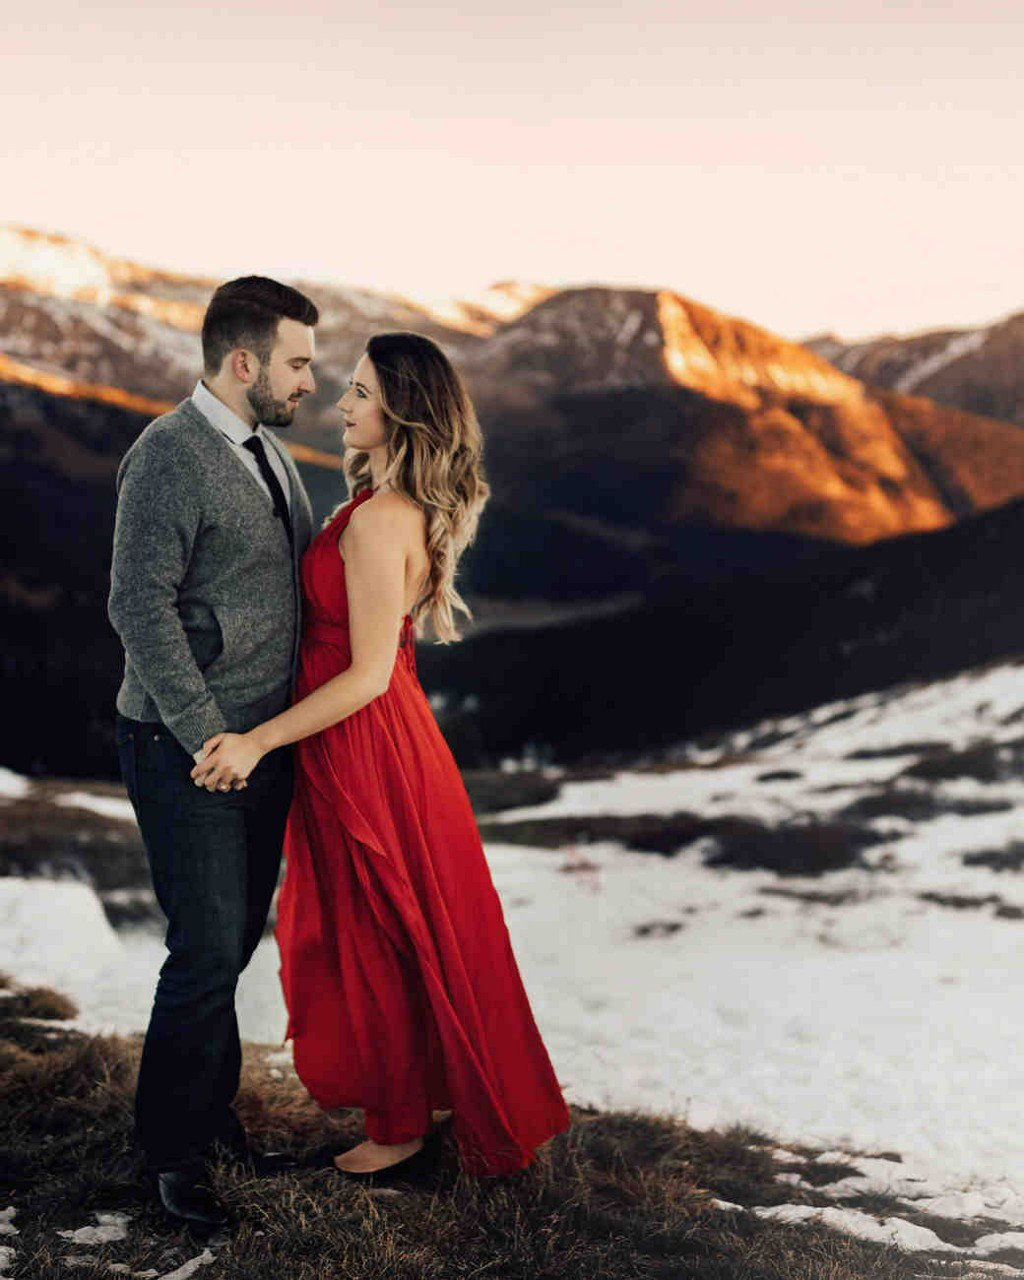 Elopement Photos That Make the Case for Getting Hitched Somewhere Cold https://t.co/DIExR6g9zN https://t.co/Zl5LfyV8Hc